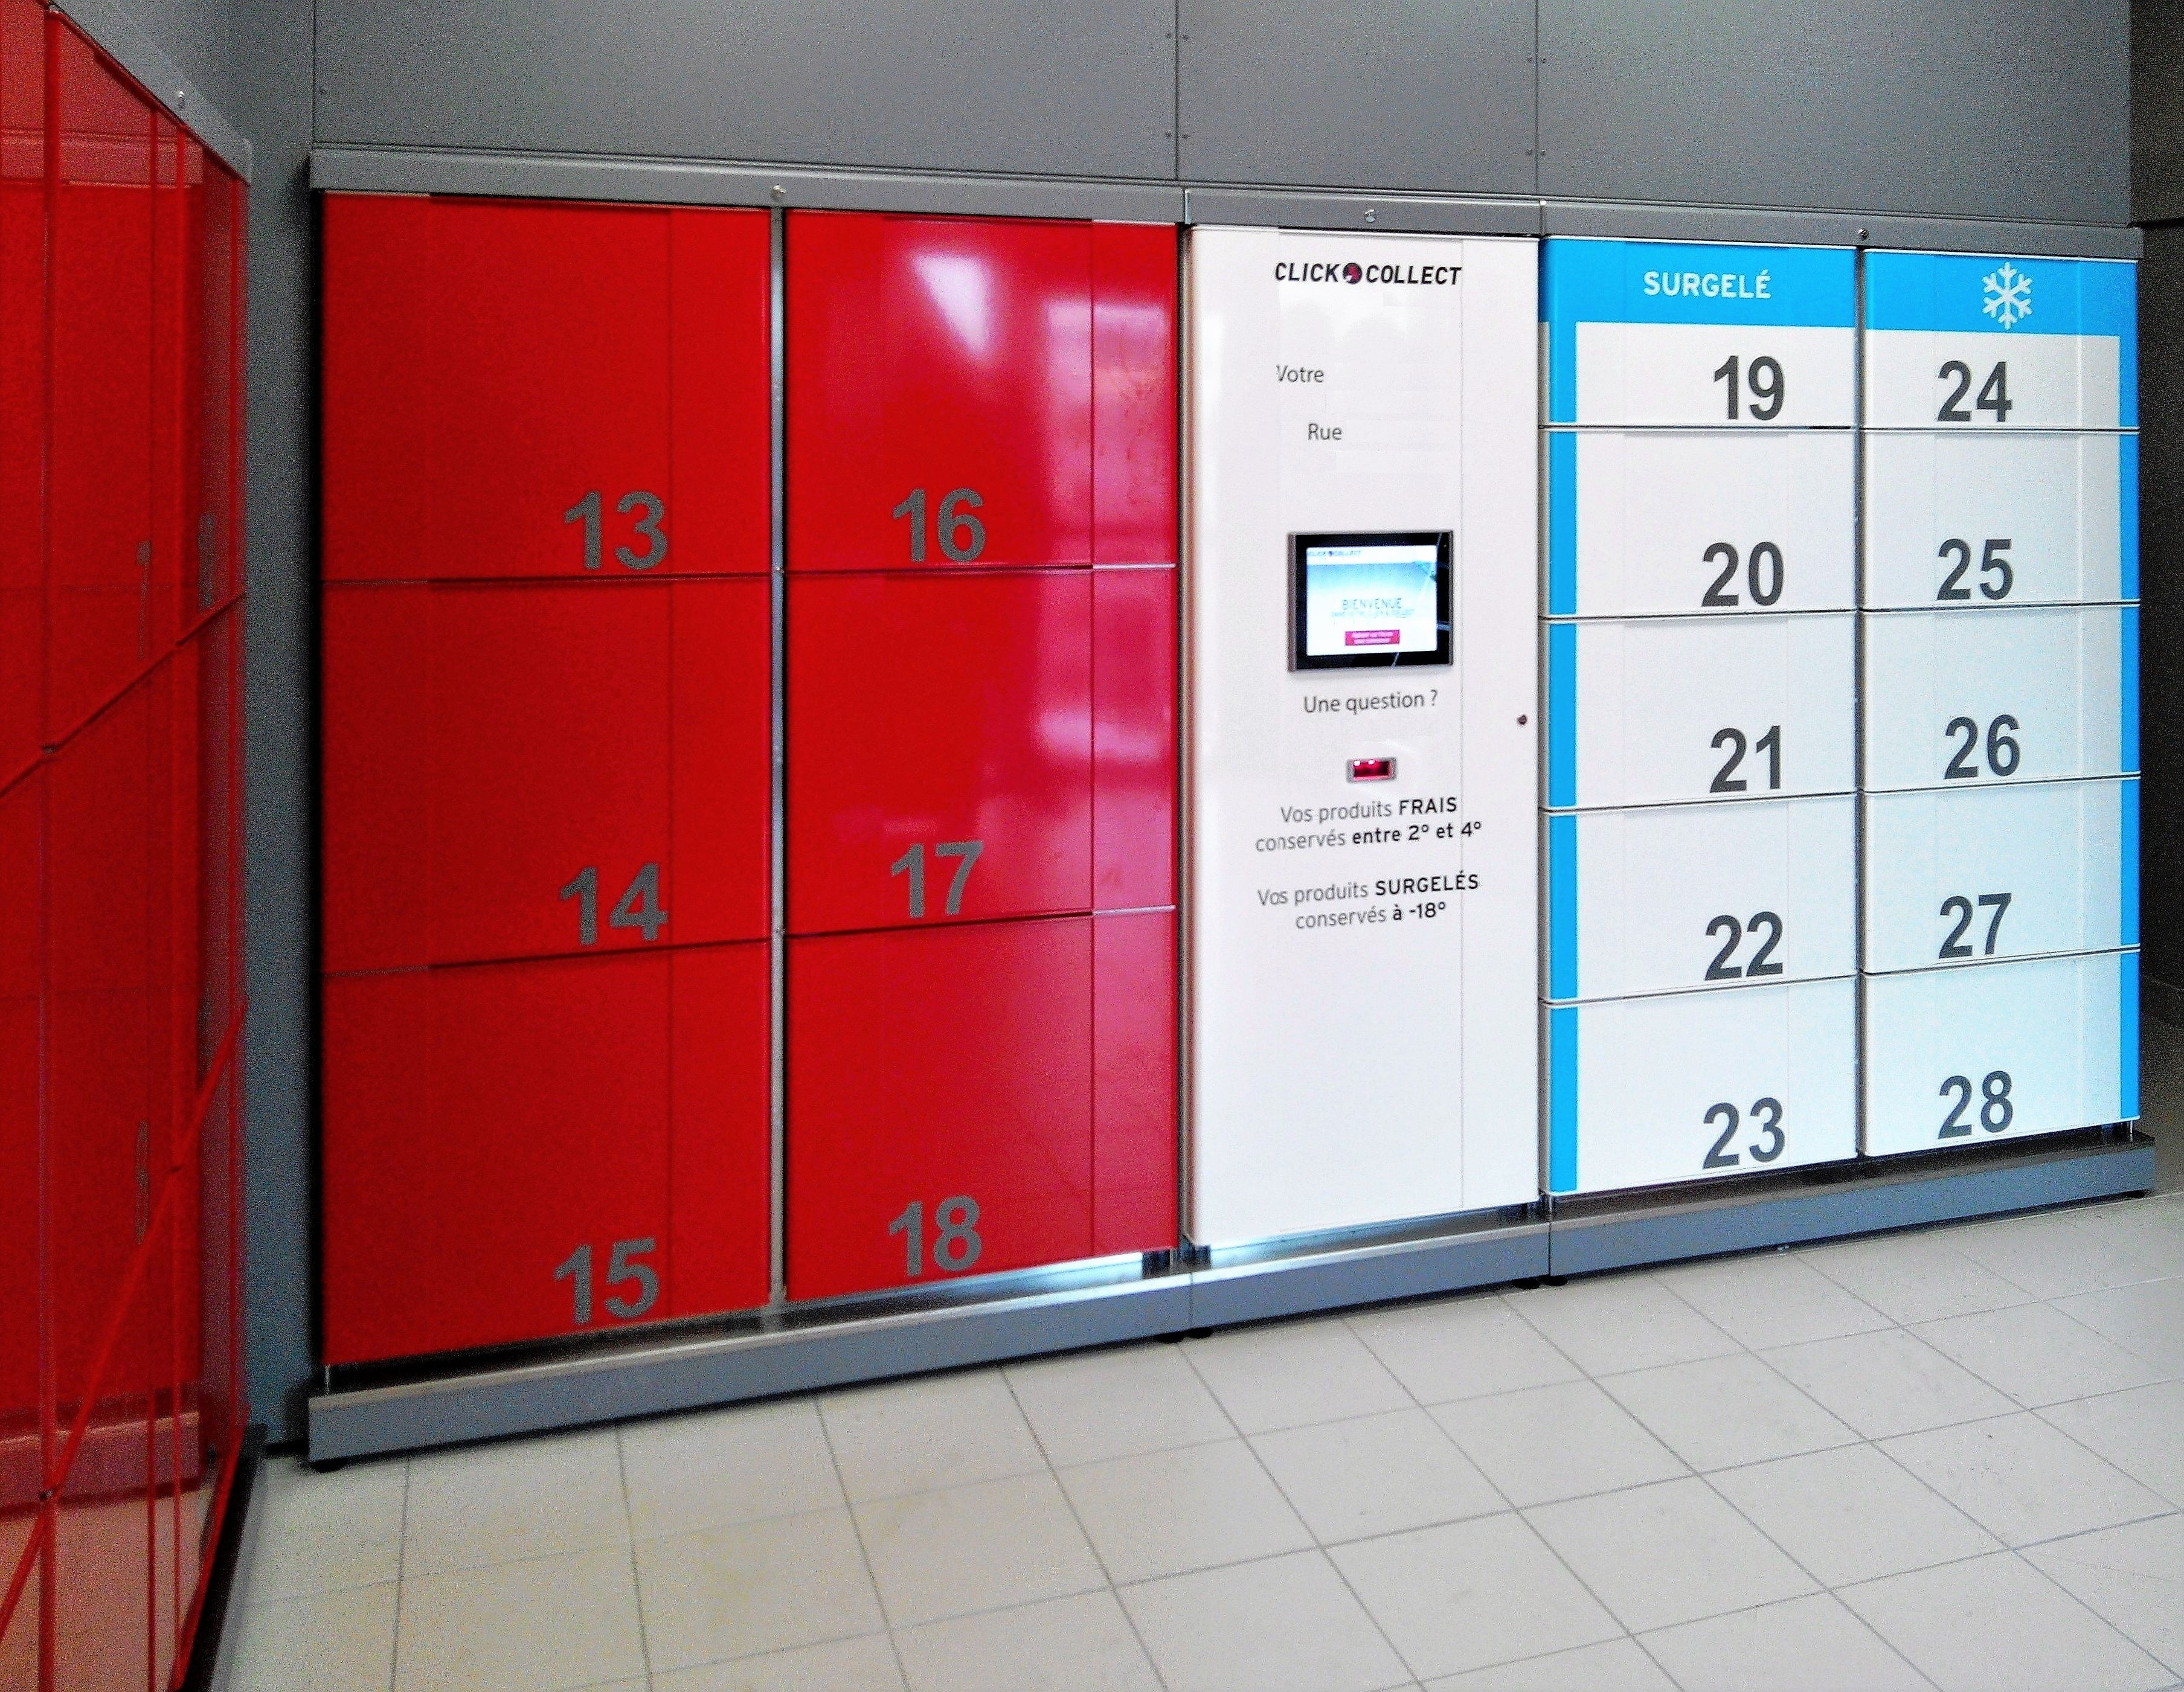 Pickup station cool lockers. Temperature-controlled lockers for groceries indoors. Your shop is now open 24/7.